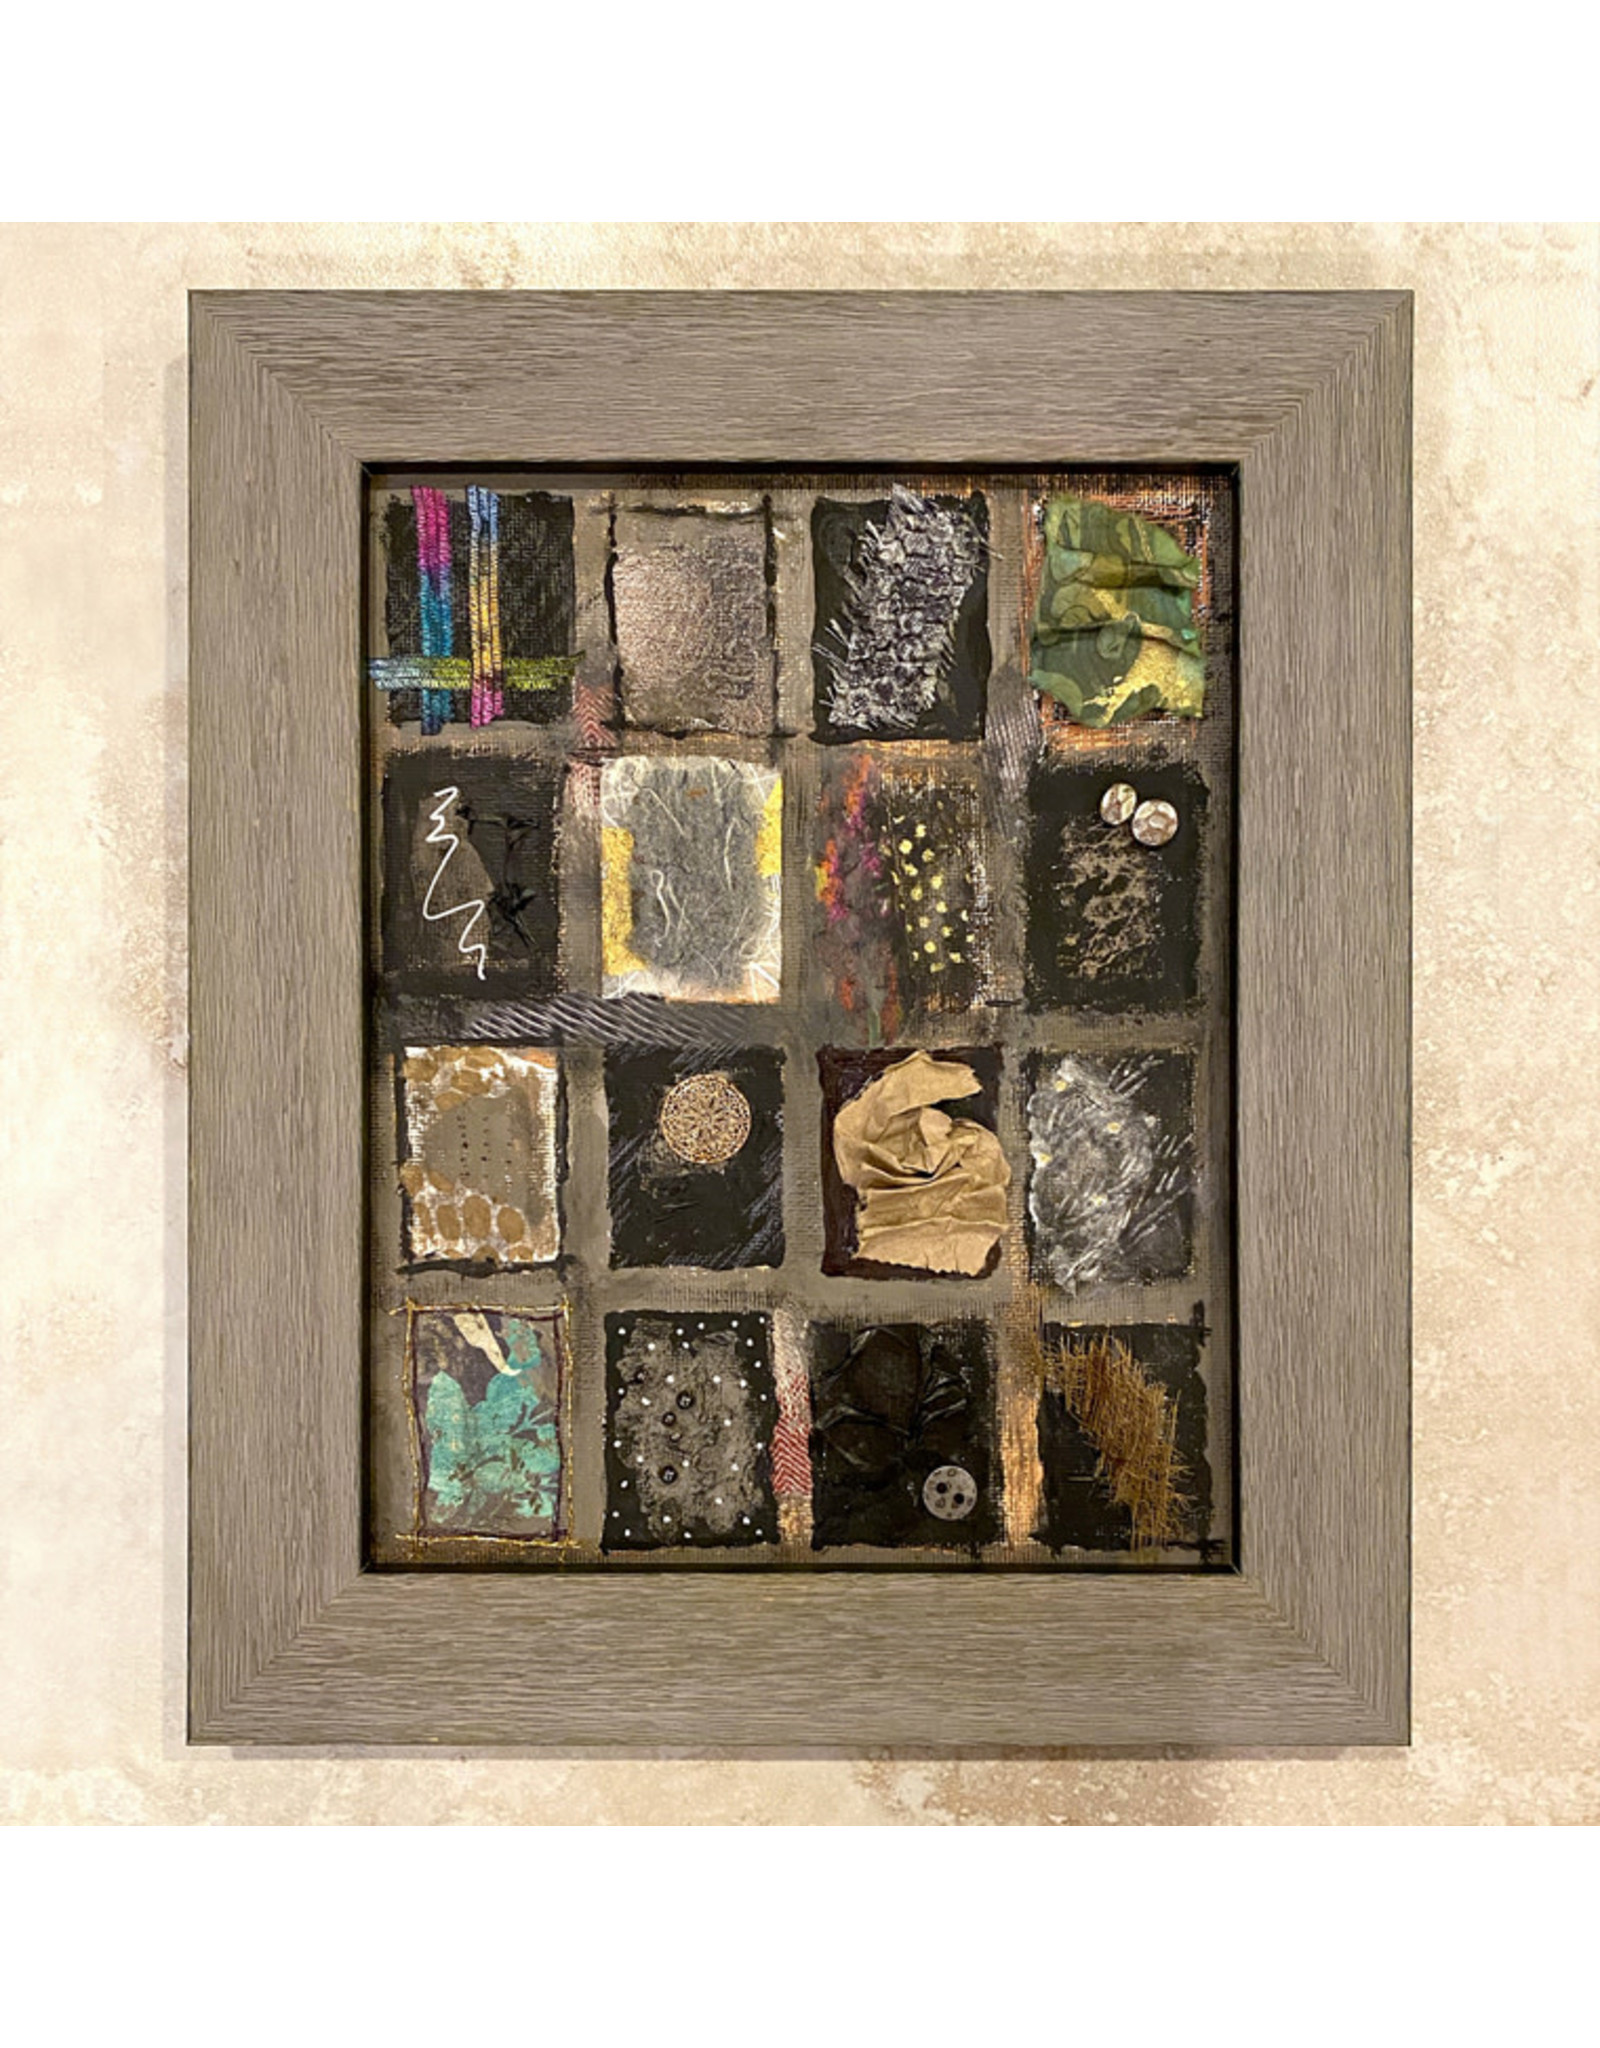 "Susan Estrella TAUPE RECTANGLES Mixed media, 10.5x11.5"" framed, SUSE"